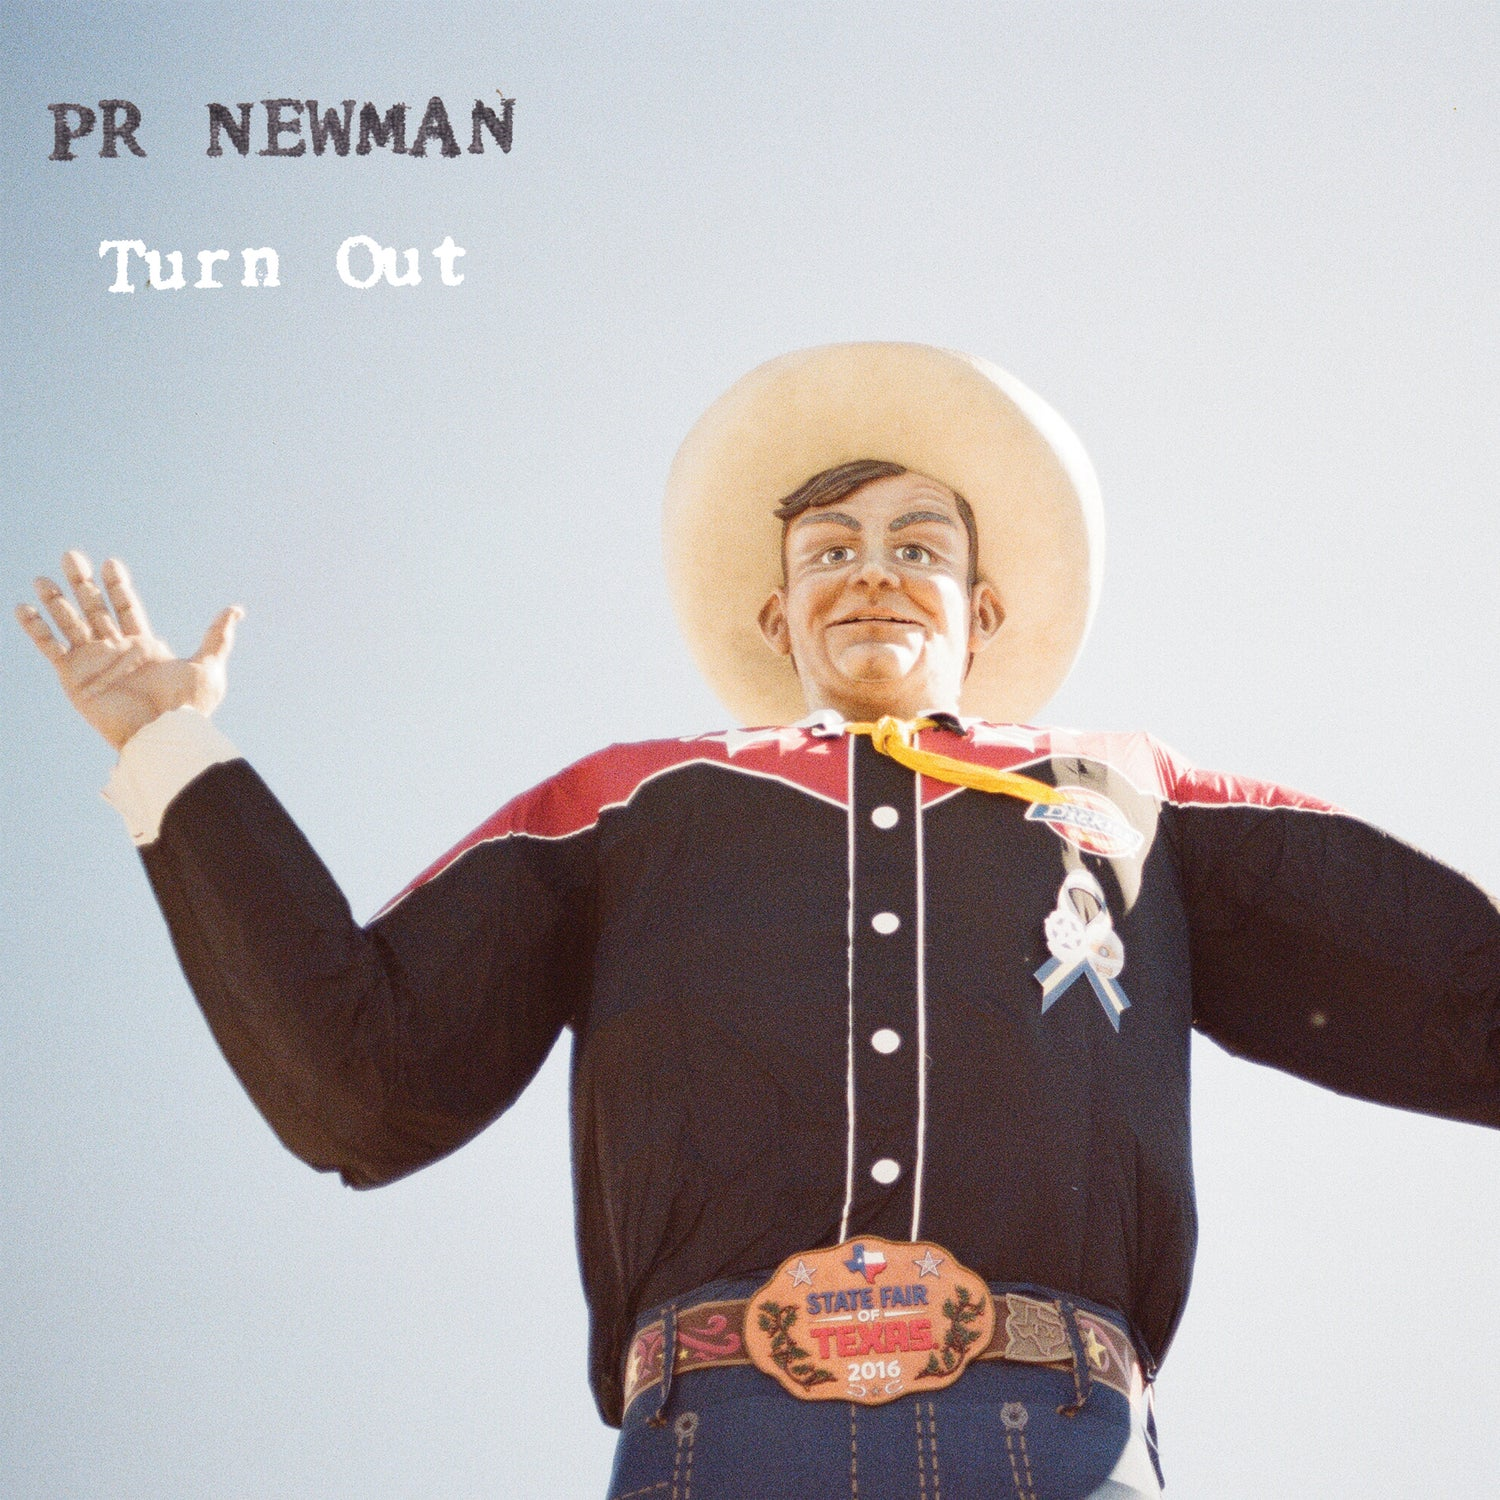 Image of (PRE ORDER!) PR Newman - Turnout LP (vinyl)